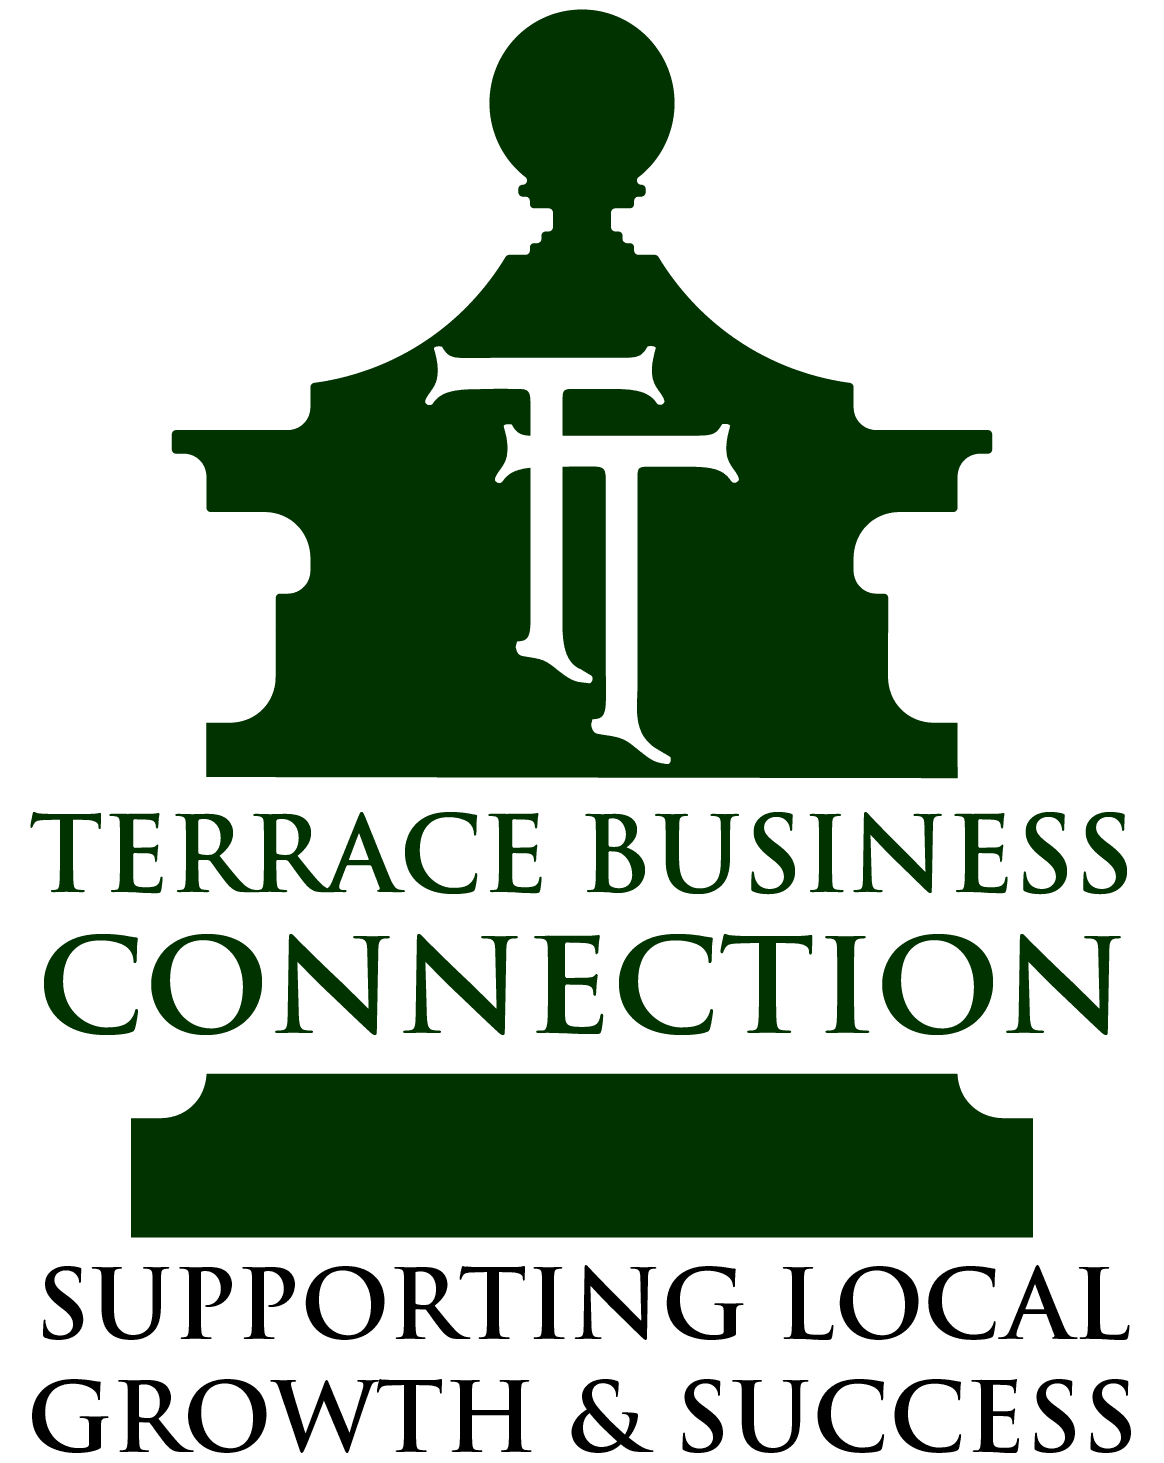 Terrace Business Connection logo in green